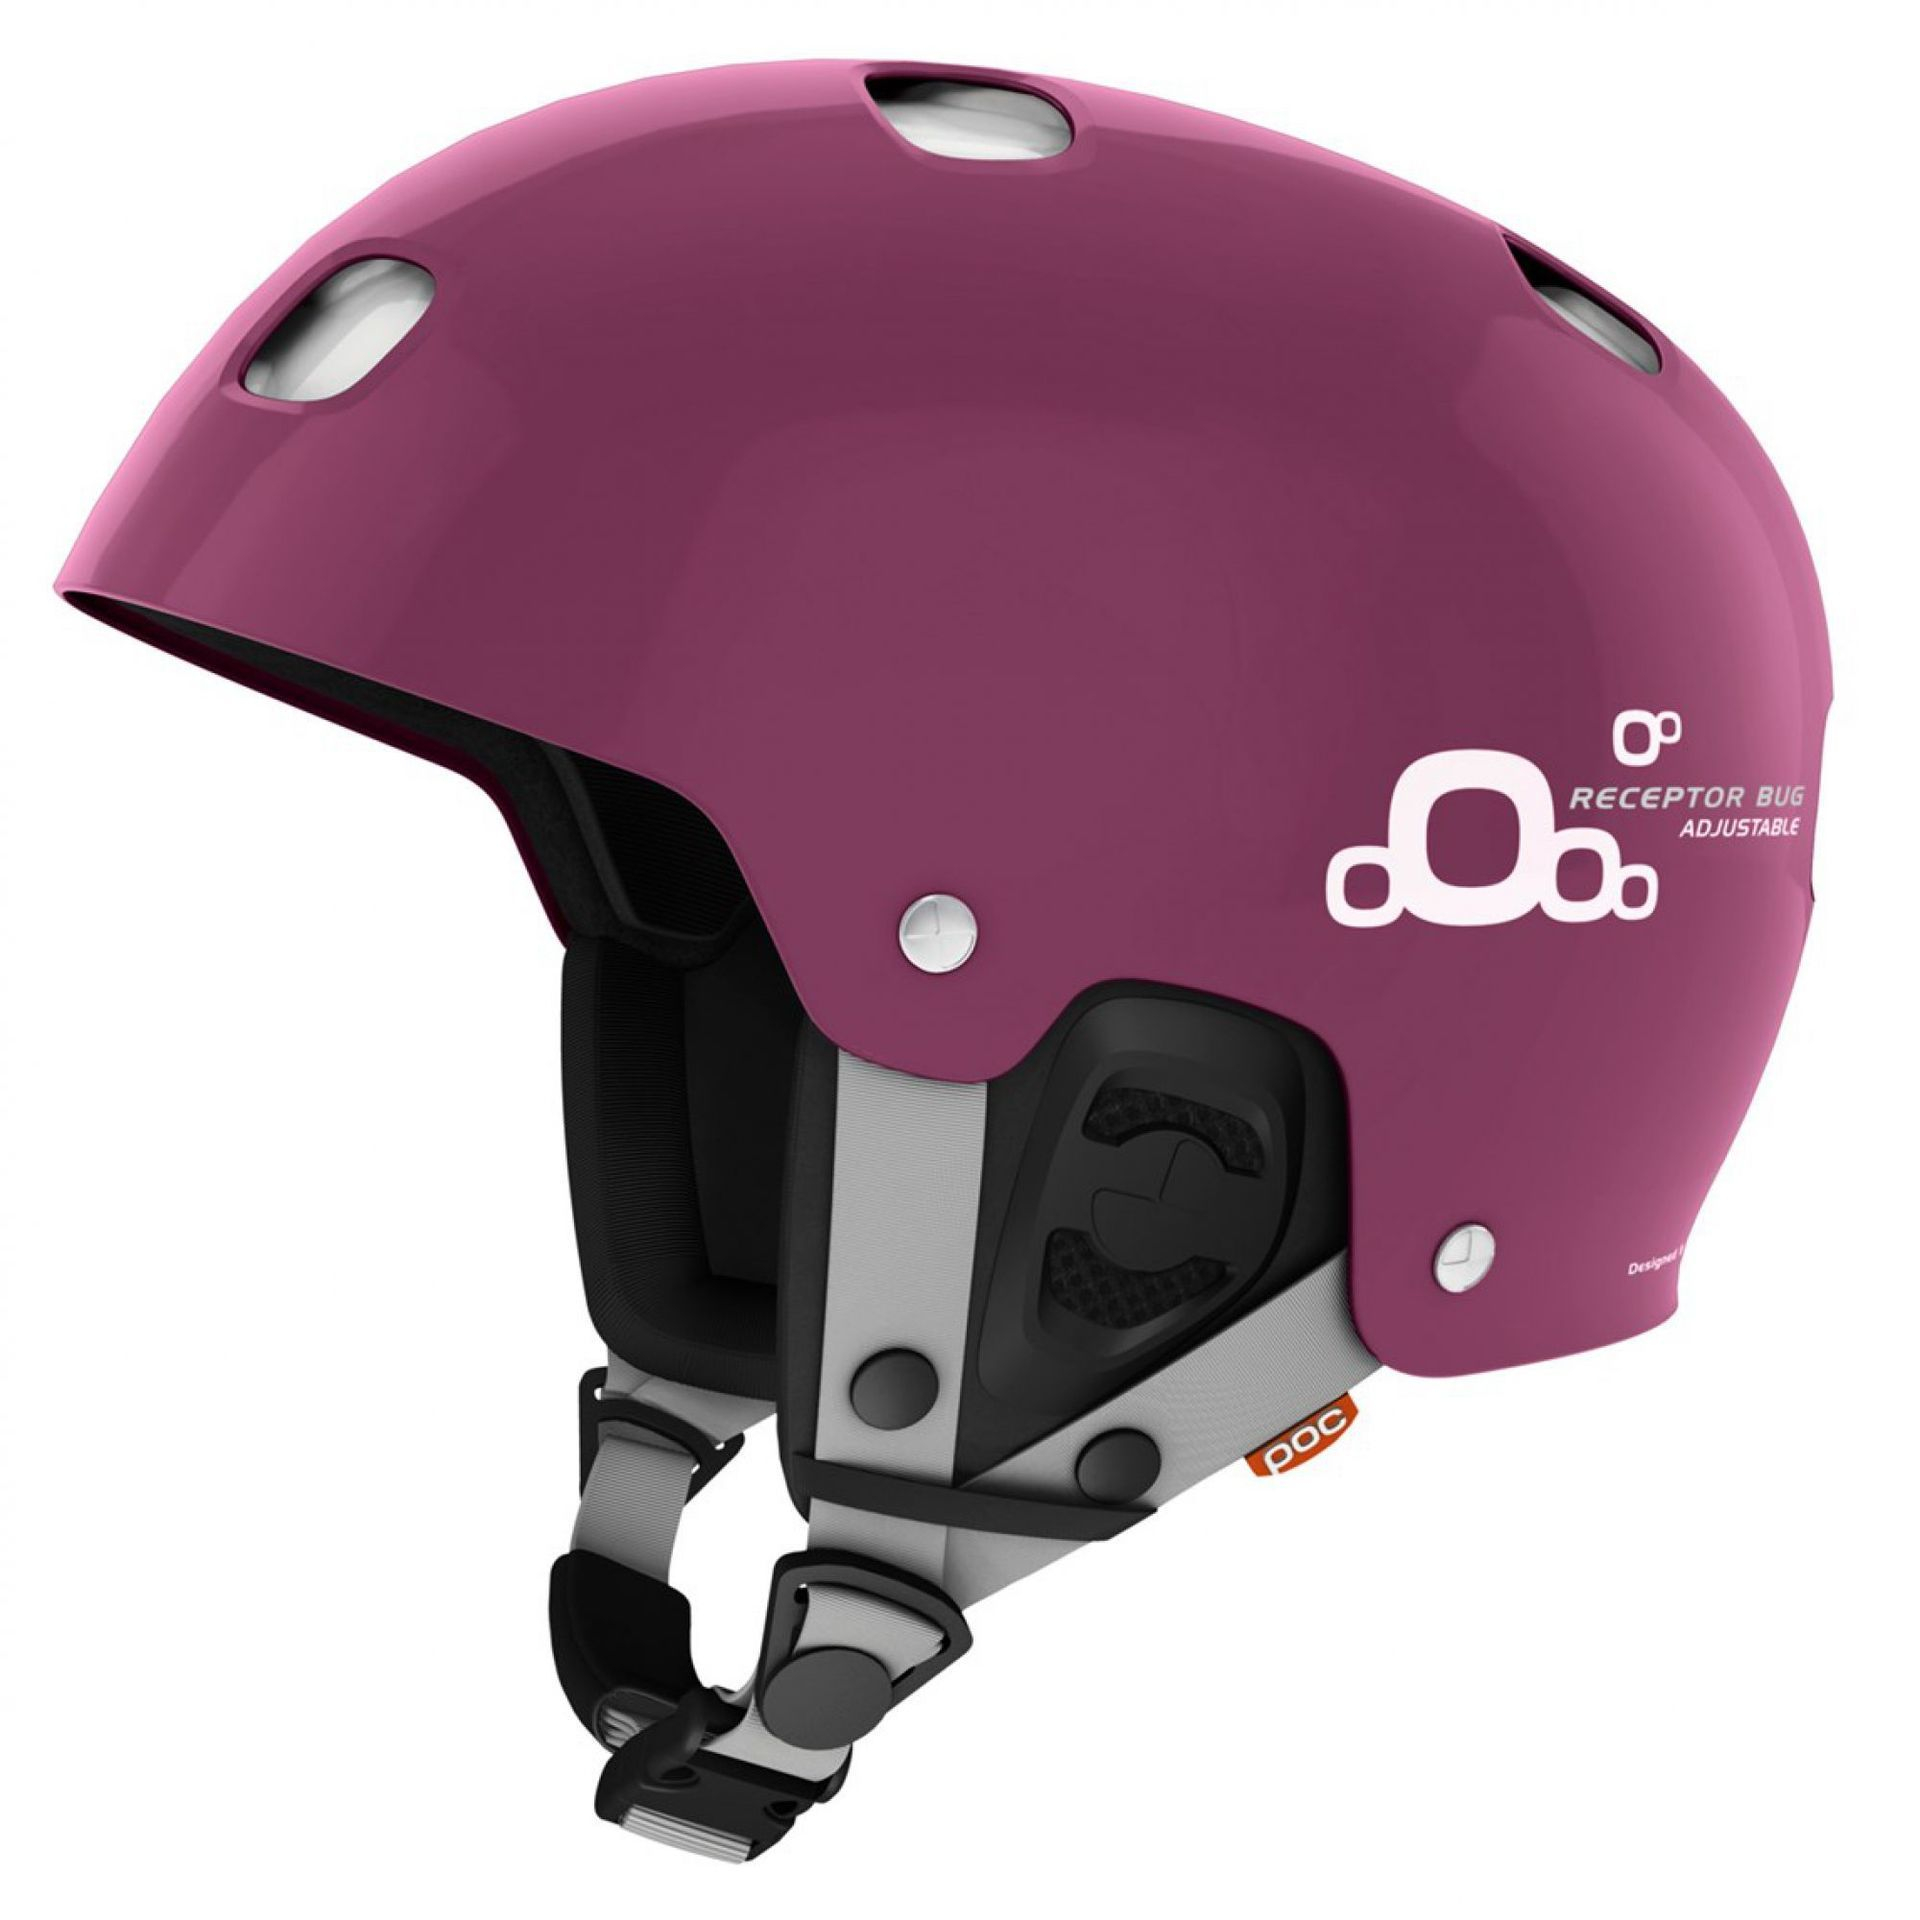 KASK POC RECEPTOR BUG ADJUSTABLE 2.0 GRANATE RED